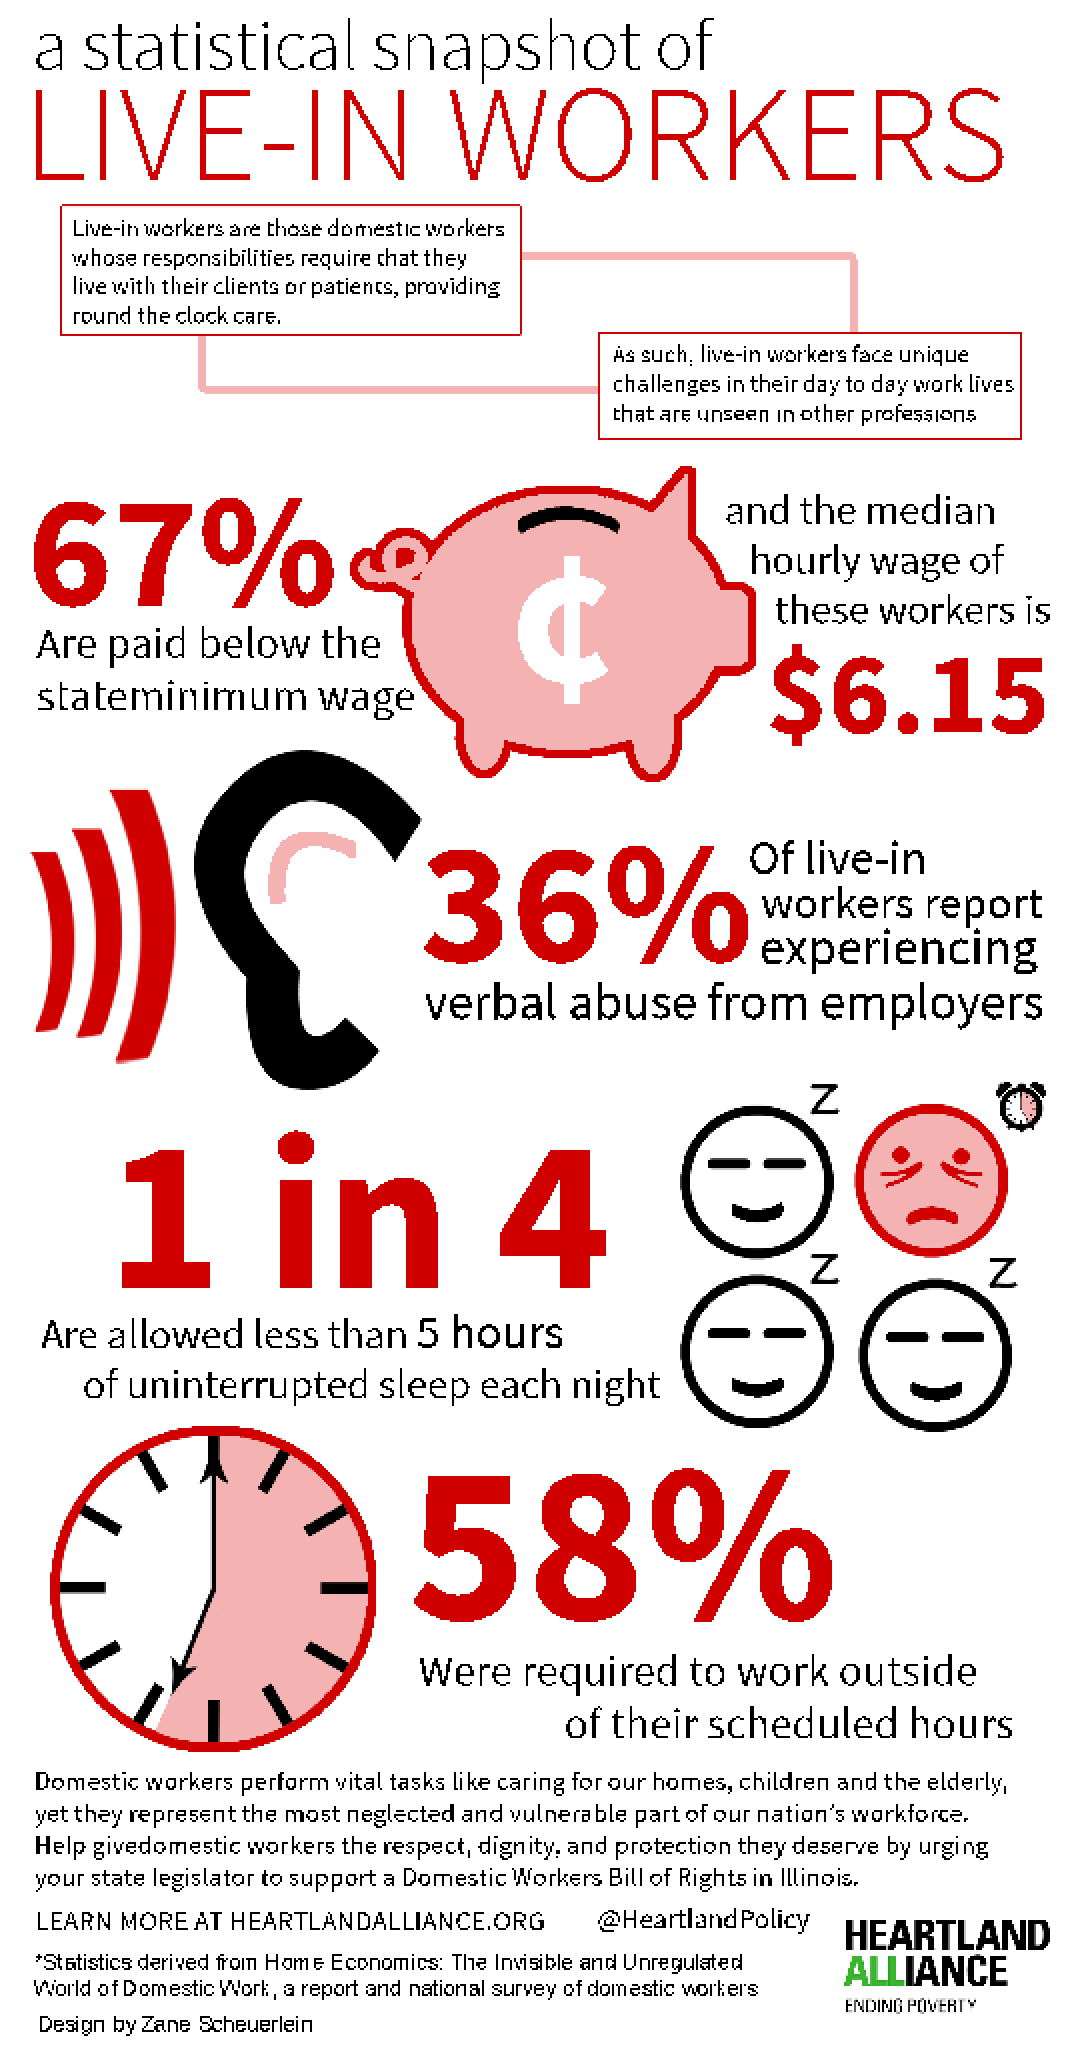 Infographic: A Statistical Snapshot of Live-In Workers